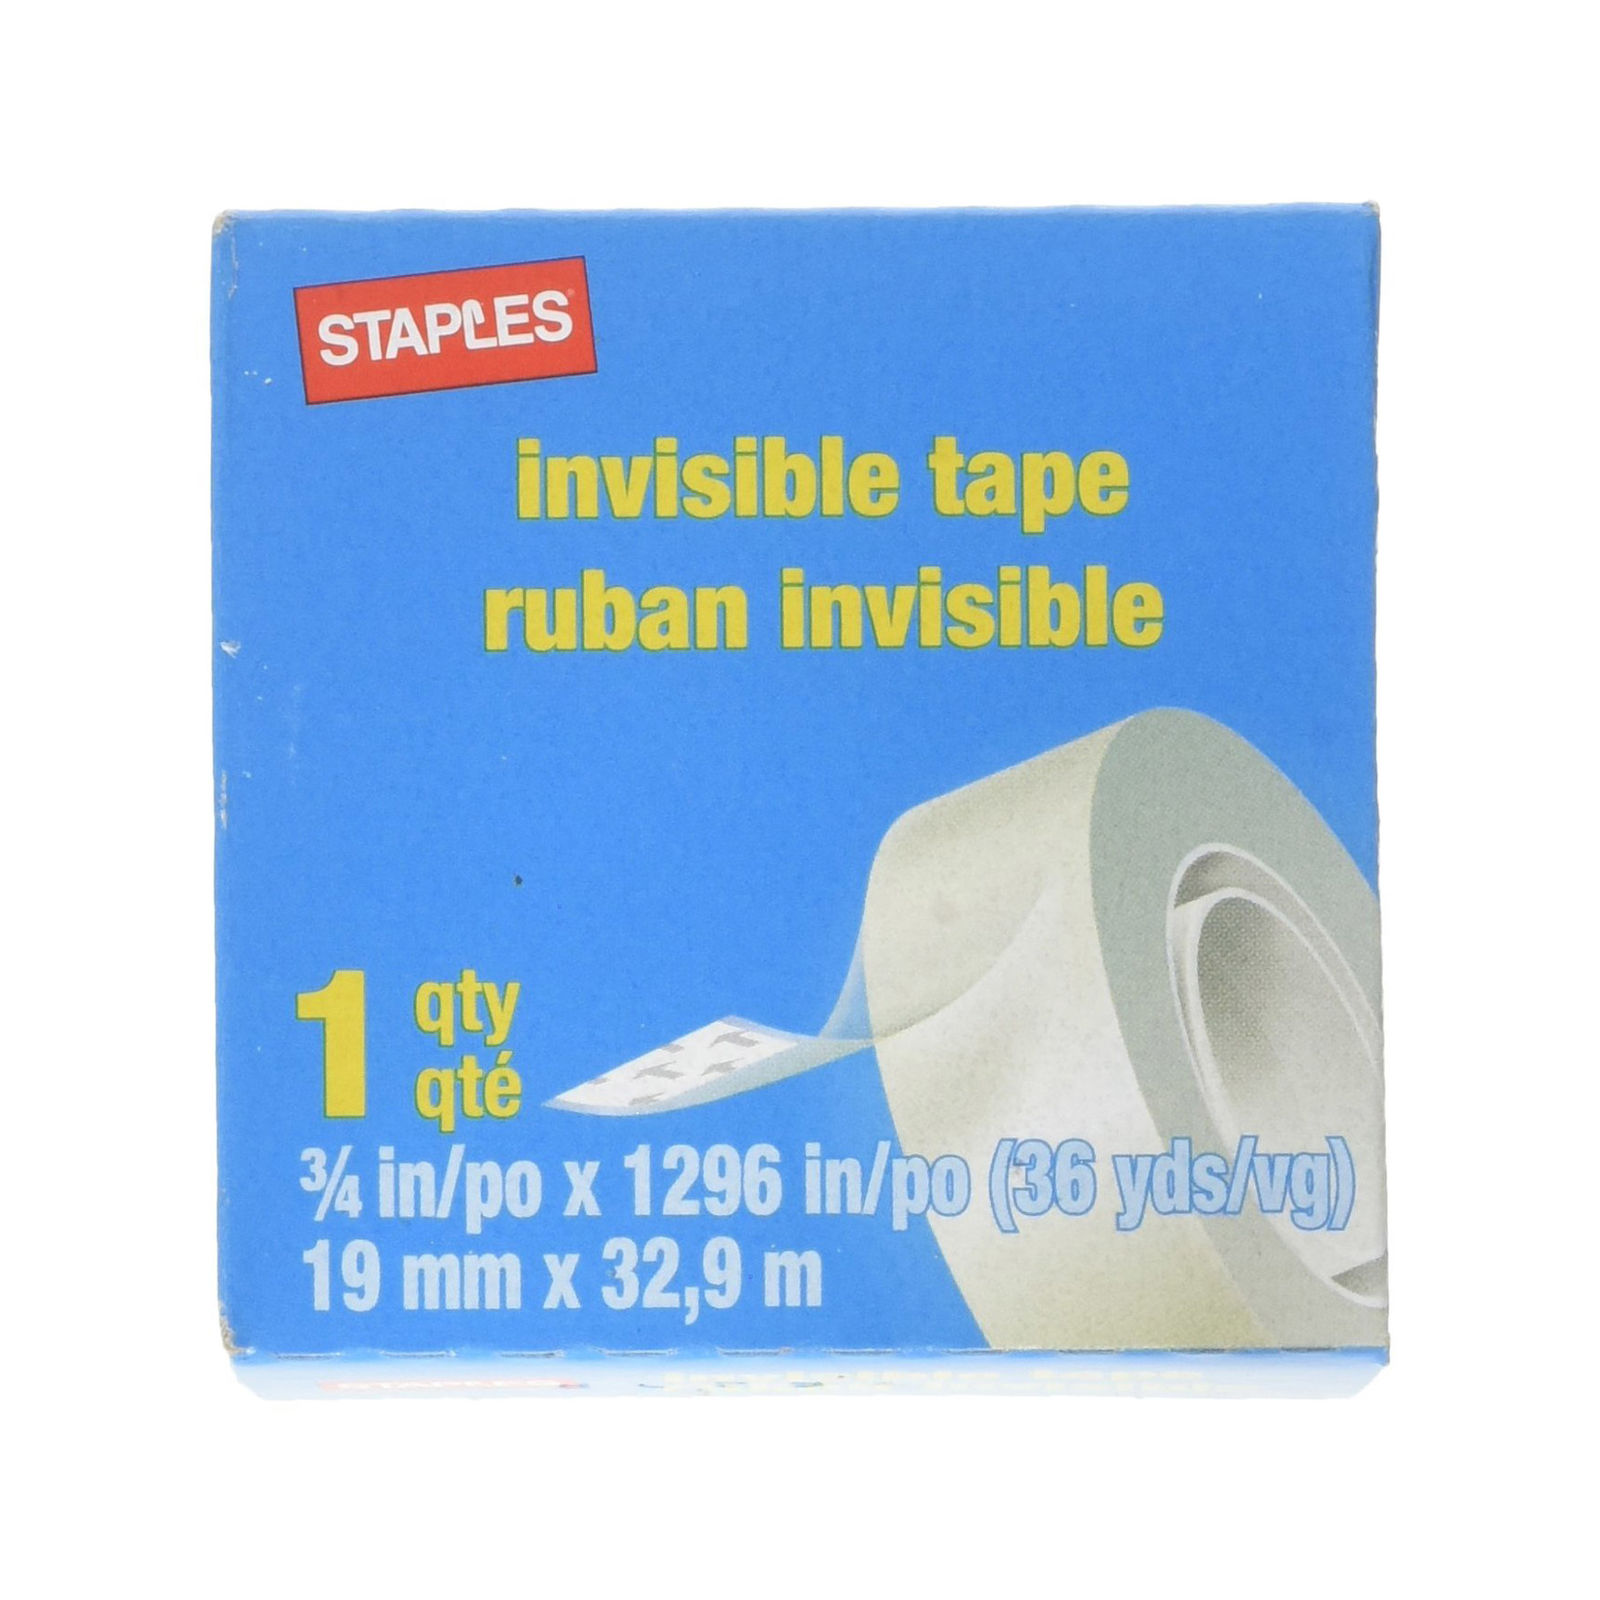 Staples 52477-P12 Invisible Tape 12 Pack (Each 36 yards)